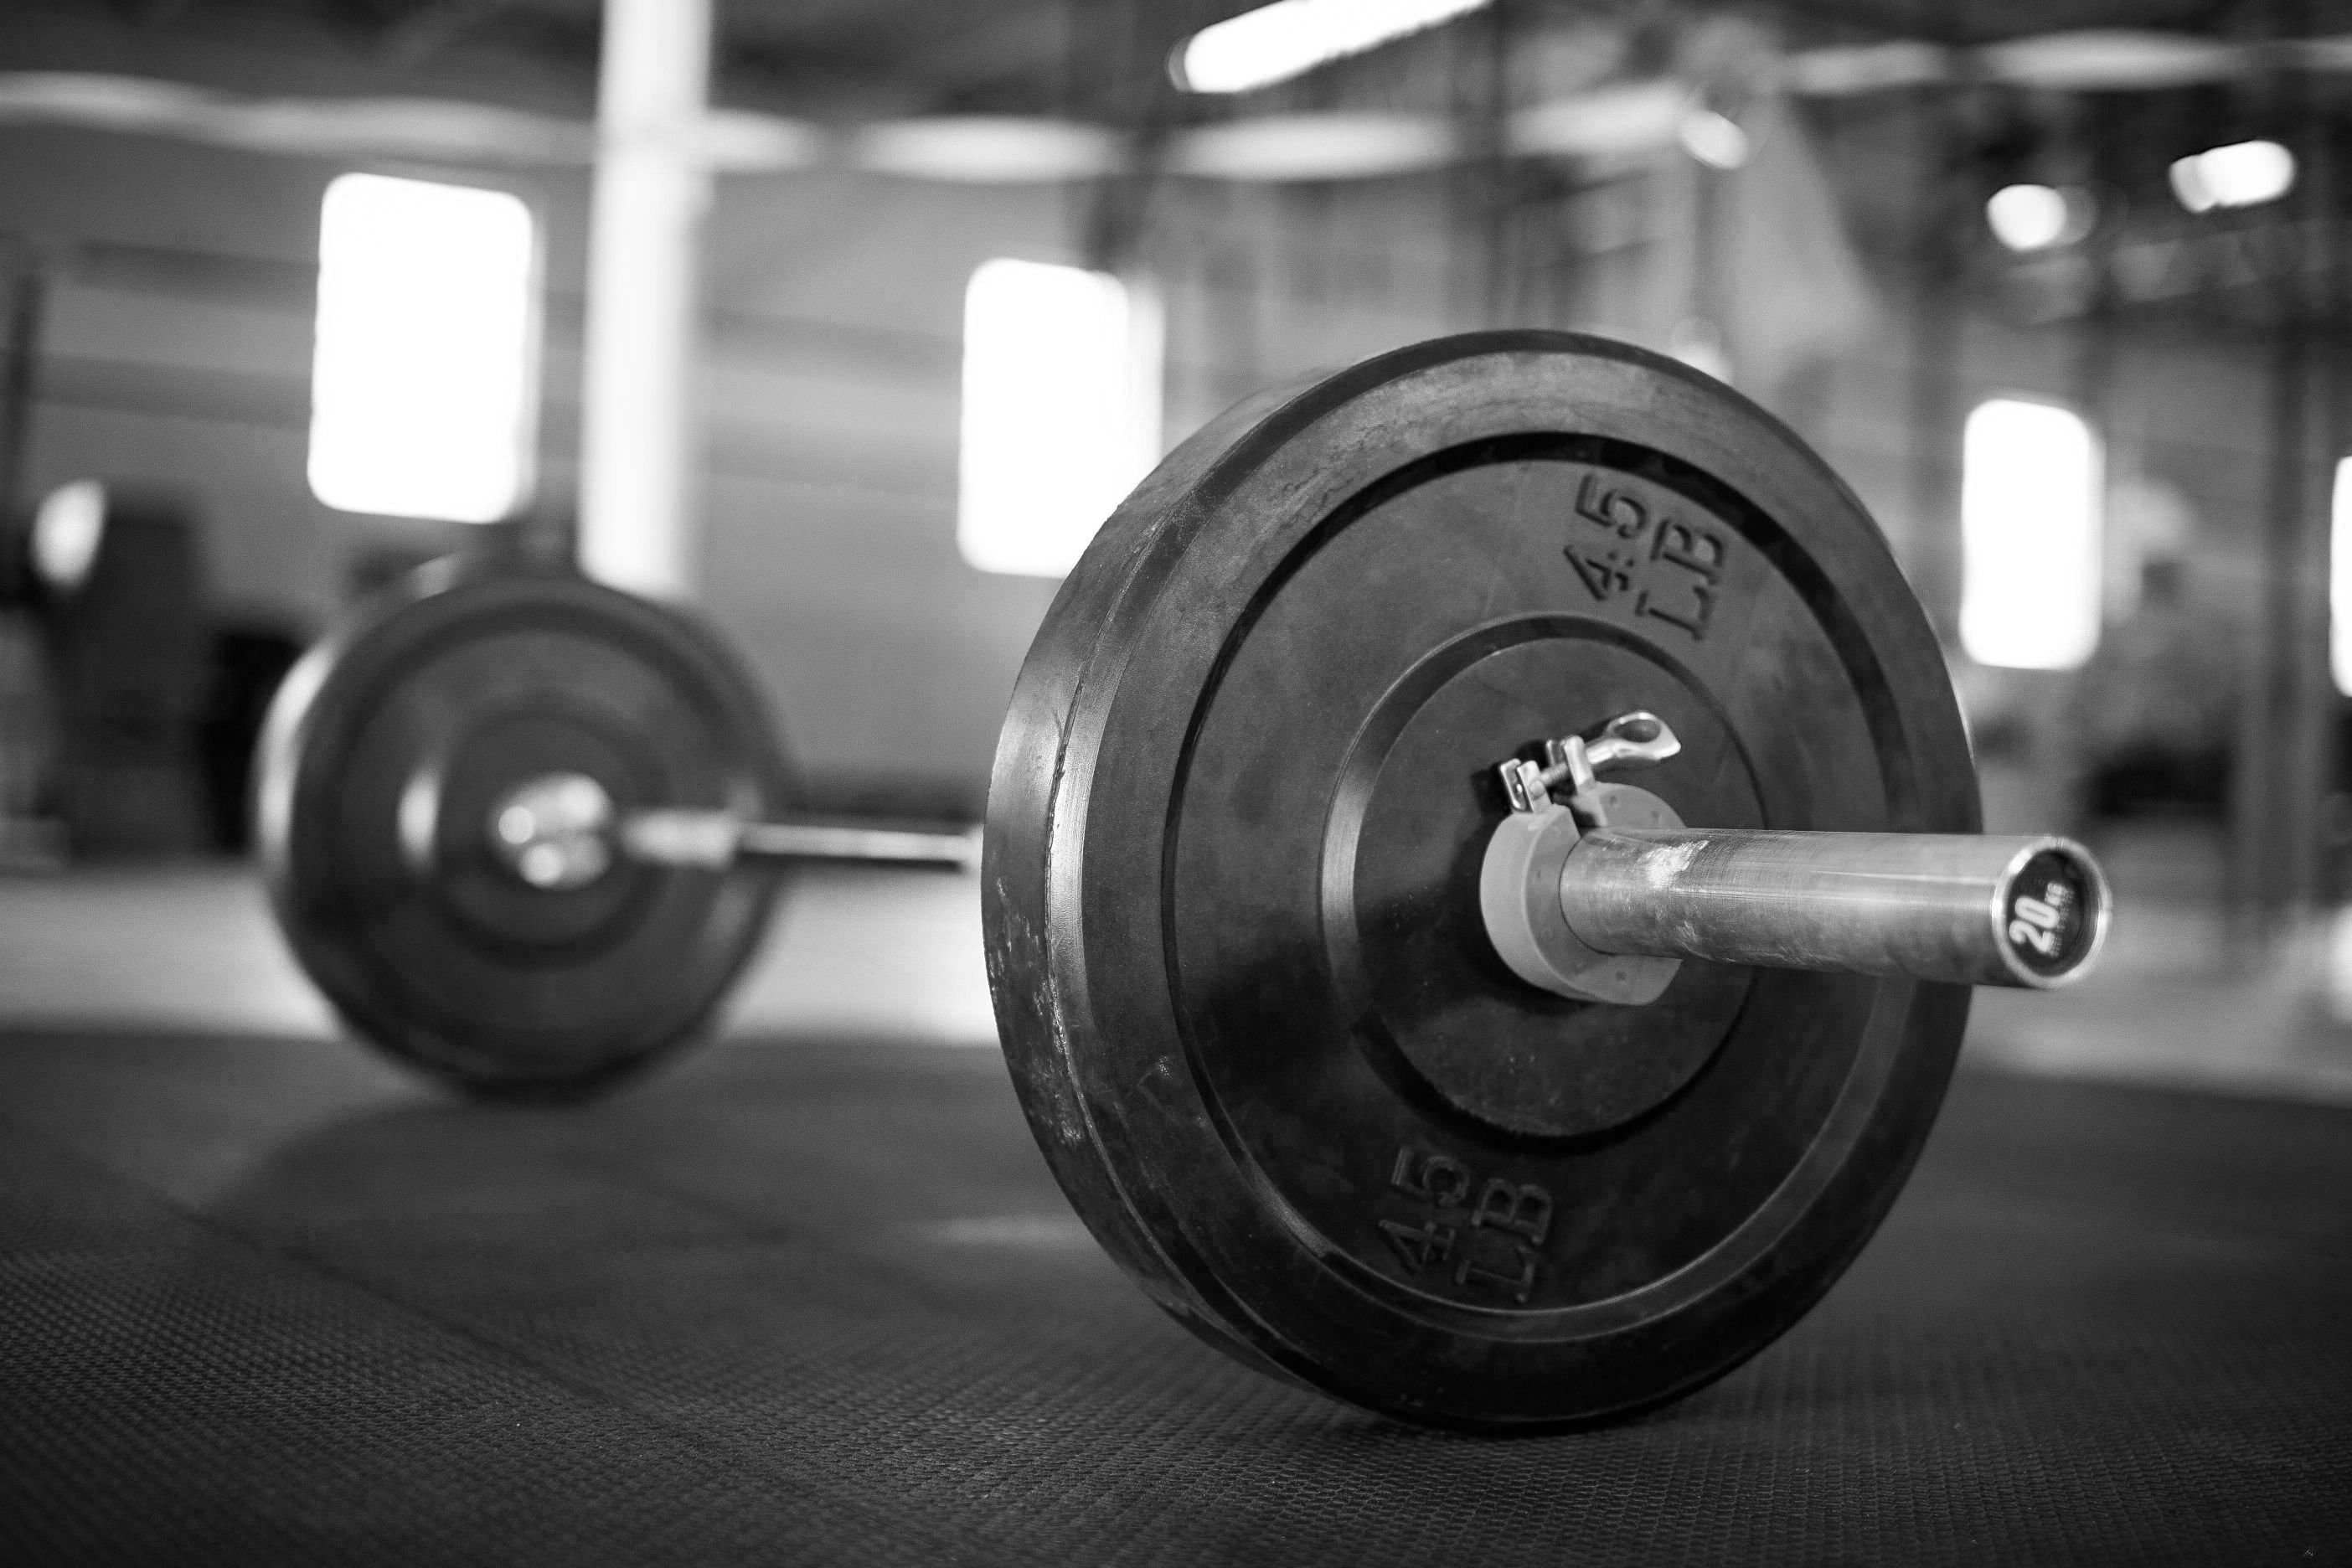 #crossfit #fitness #background